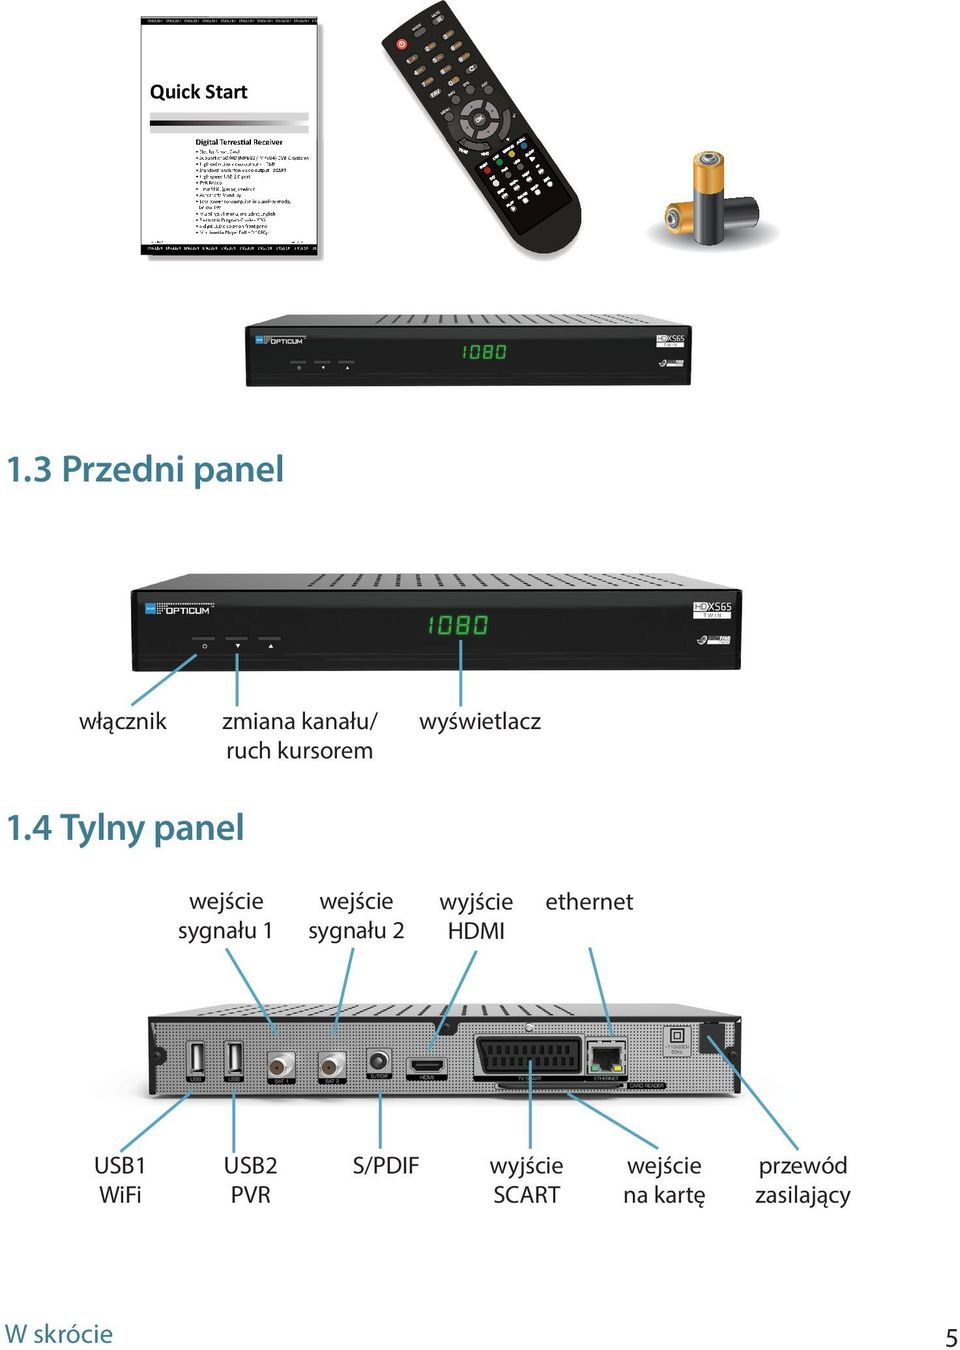 ENGLISH ENGLISH ENGLISH ENGLISH Quick Start Digital Terrestial Receiver Slot for Smart Card Support of SD/HD (MPEG2 / MPEG4) DVB-C systems High definition video output - HDMI Standard resolution